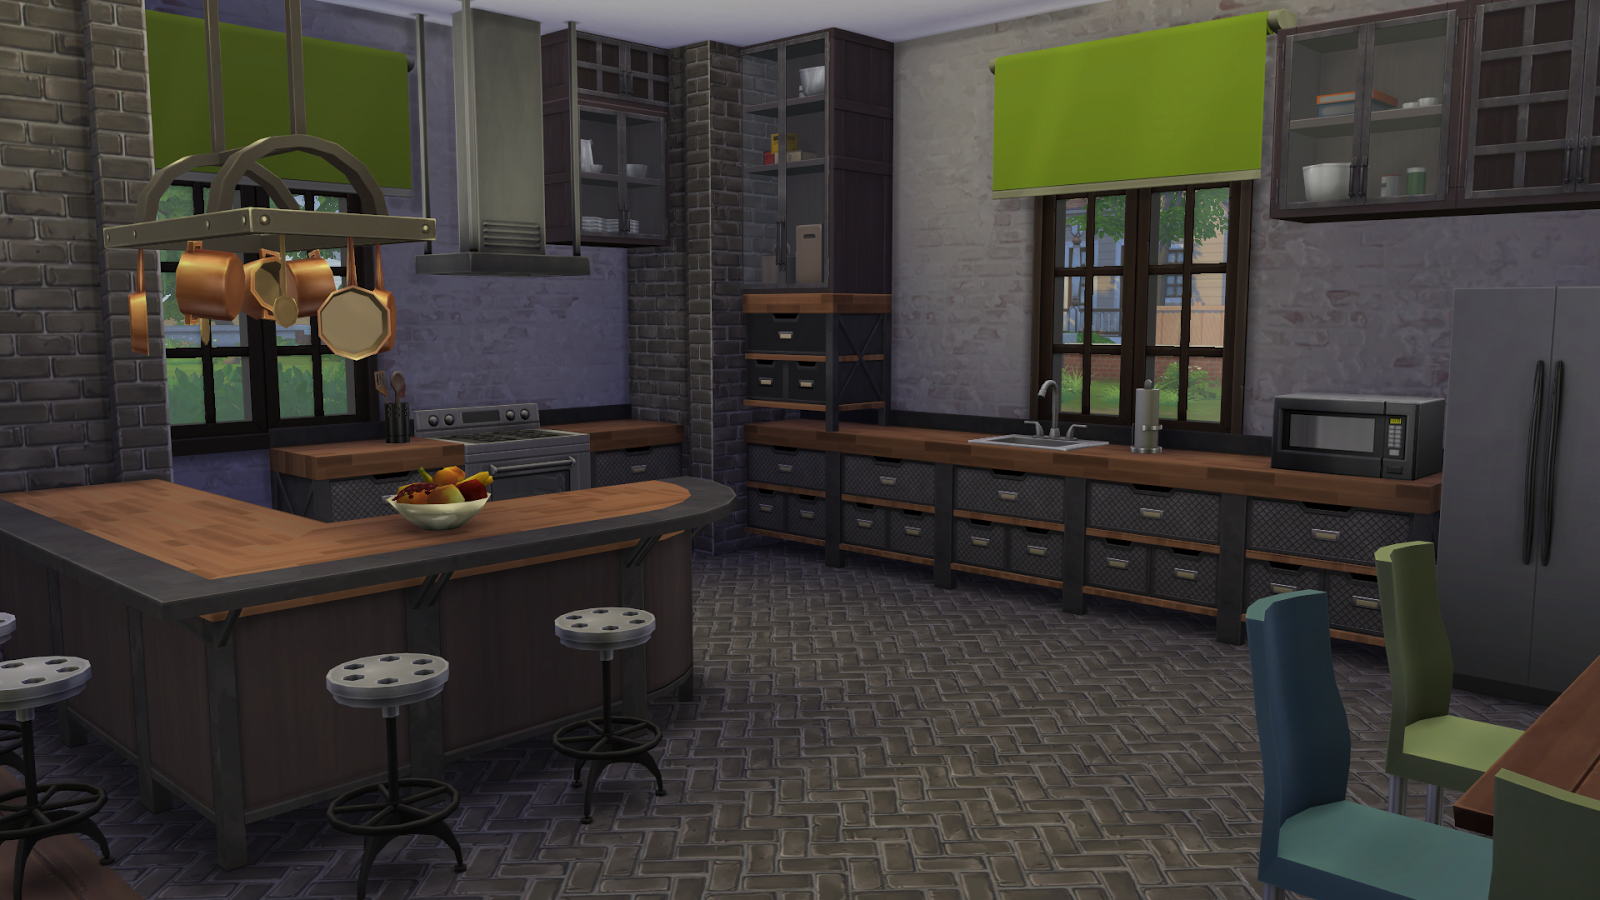 Download From The Sims 4 Gallery Under User Name Ruthless_kk